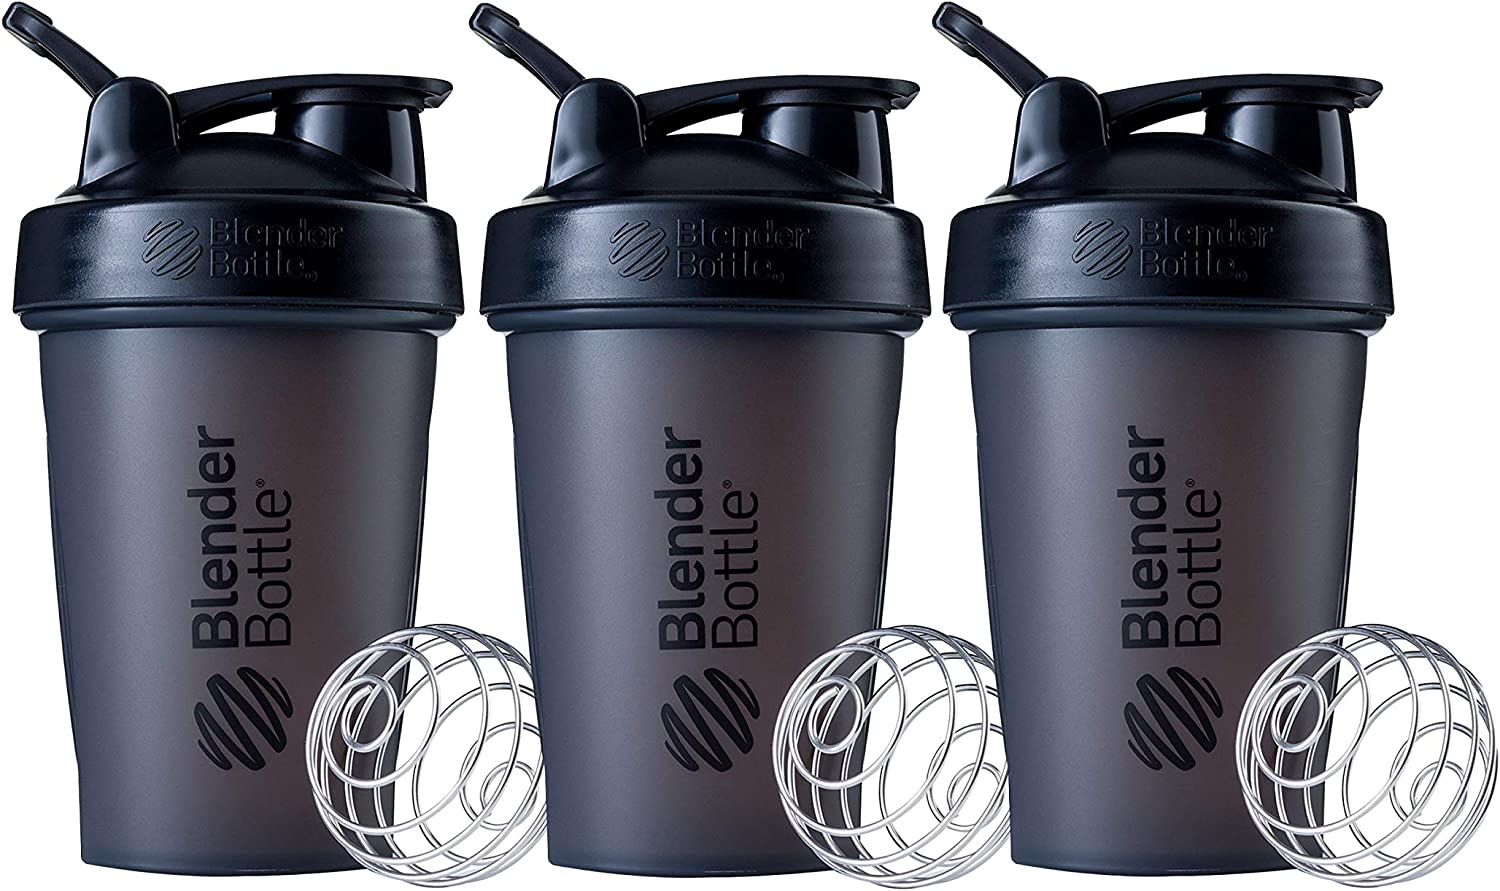 Blender Bottle Classic Loop Top Shaker Bottle, 20-Ounce, 3-Pack, All Black